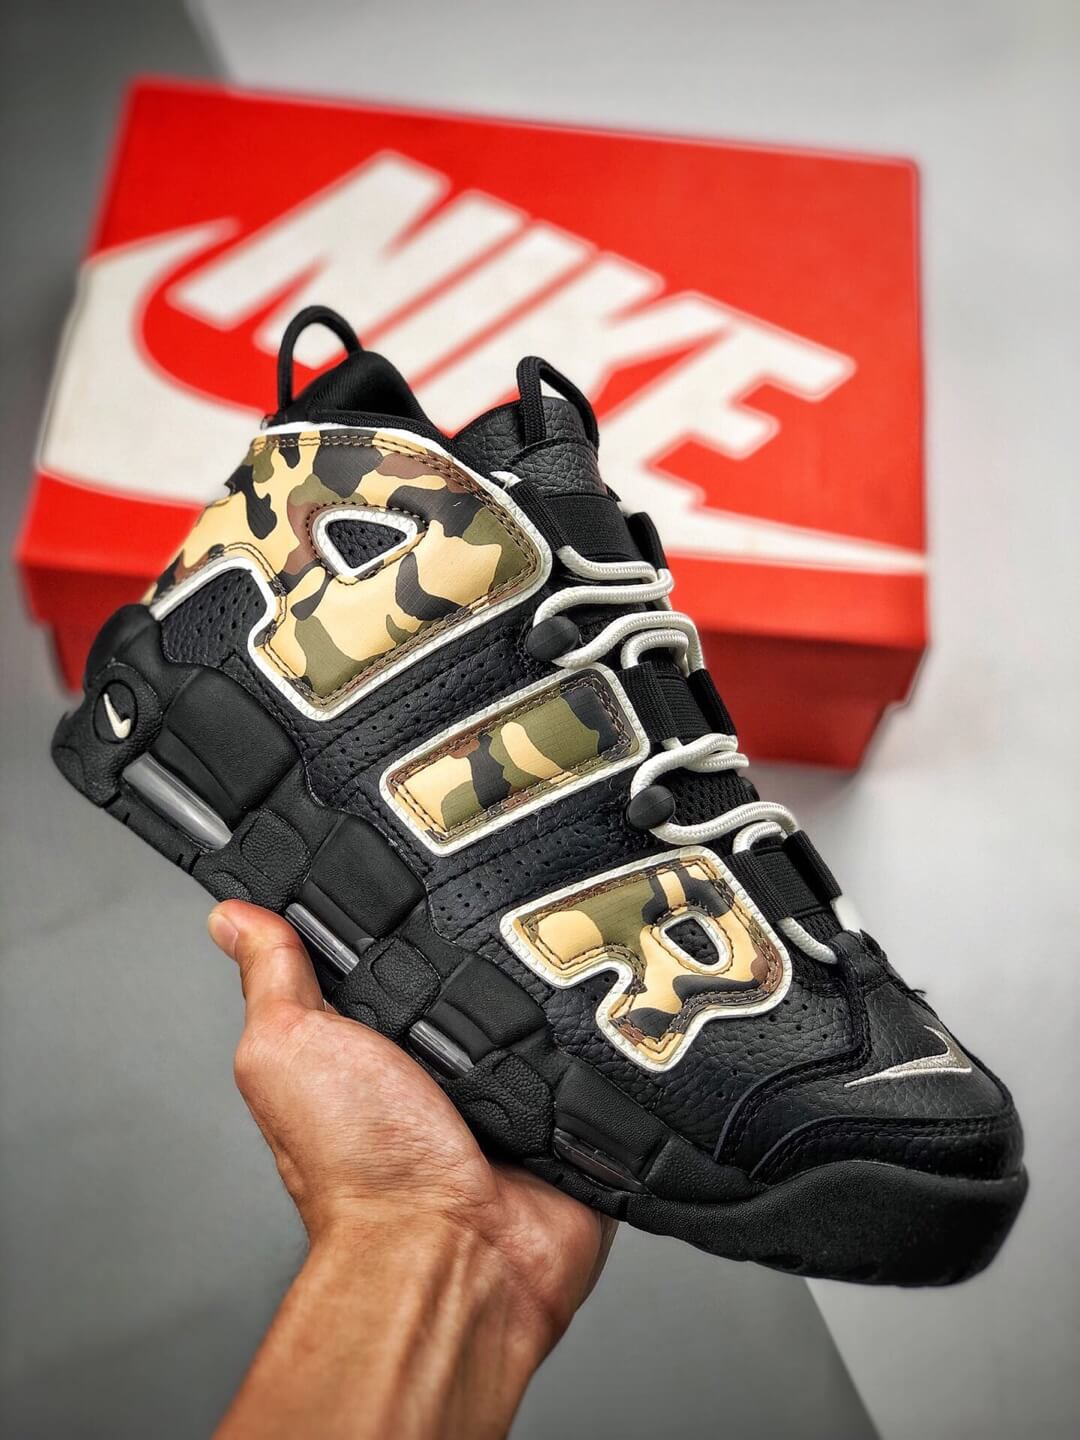 The Nike Air More Uptempo Camo Basketball Sneaker Premium Tumbled Leather Upper Top Replica Sports Shoes 01